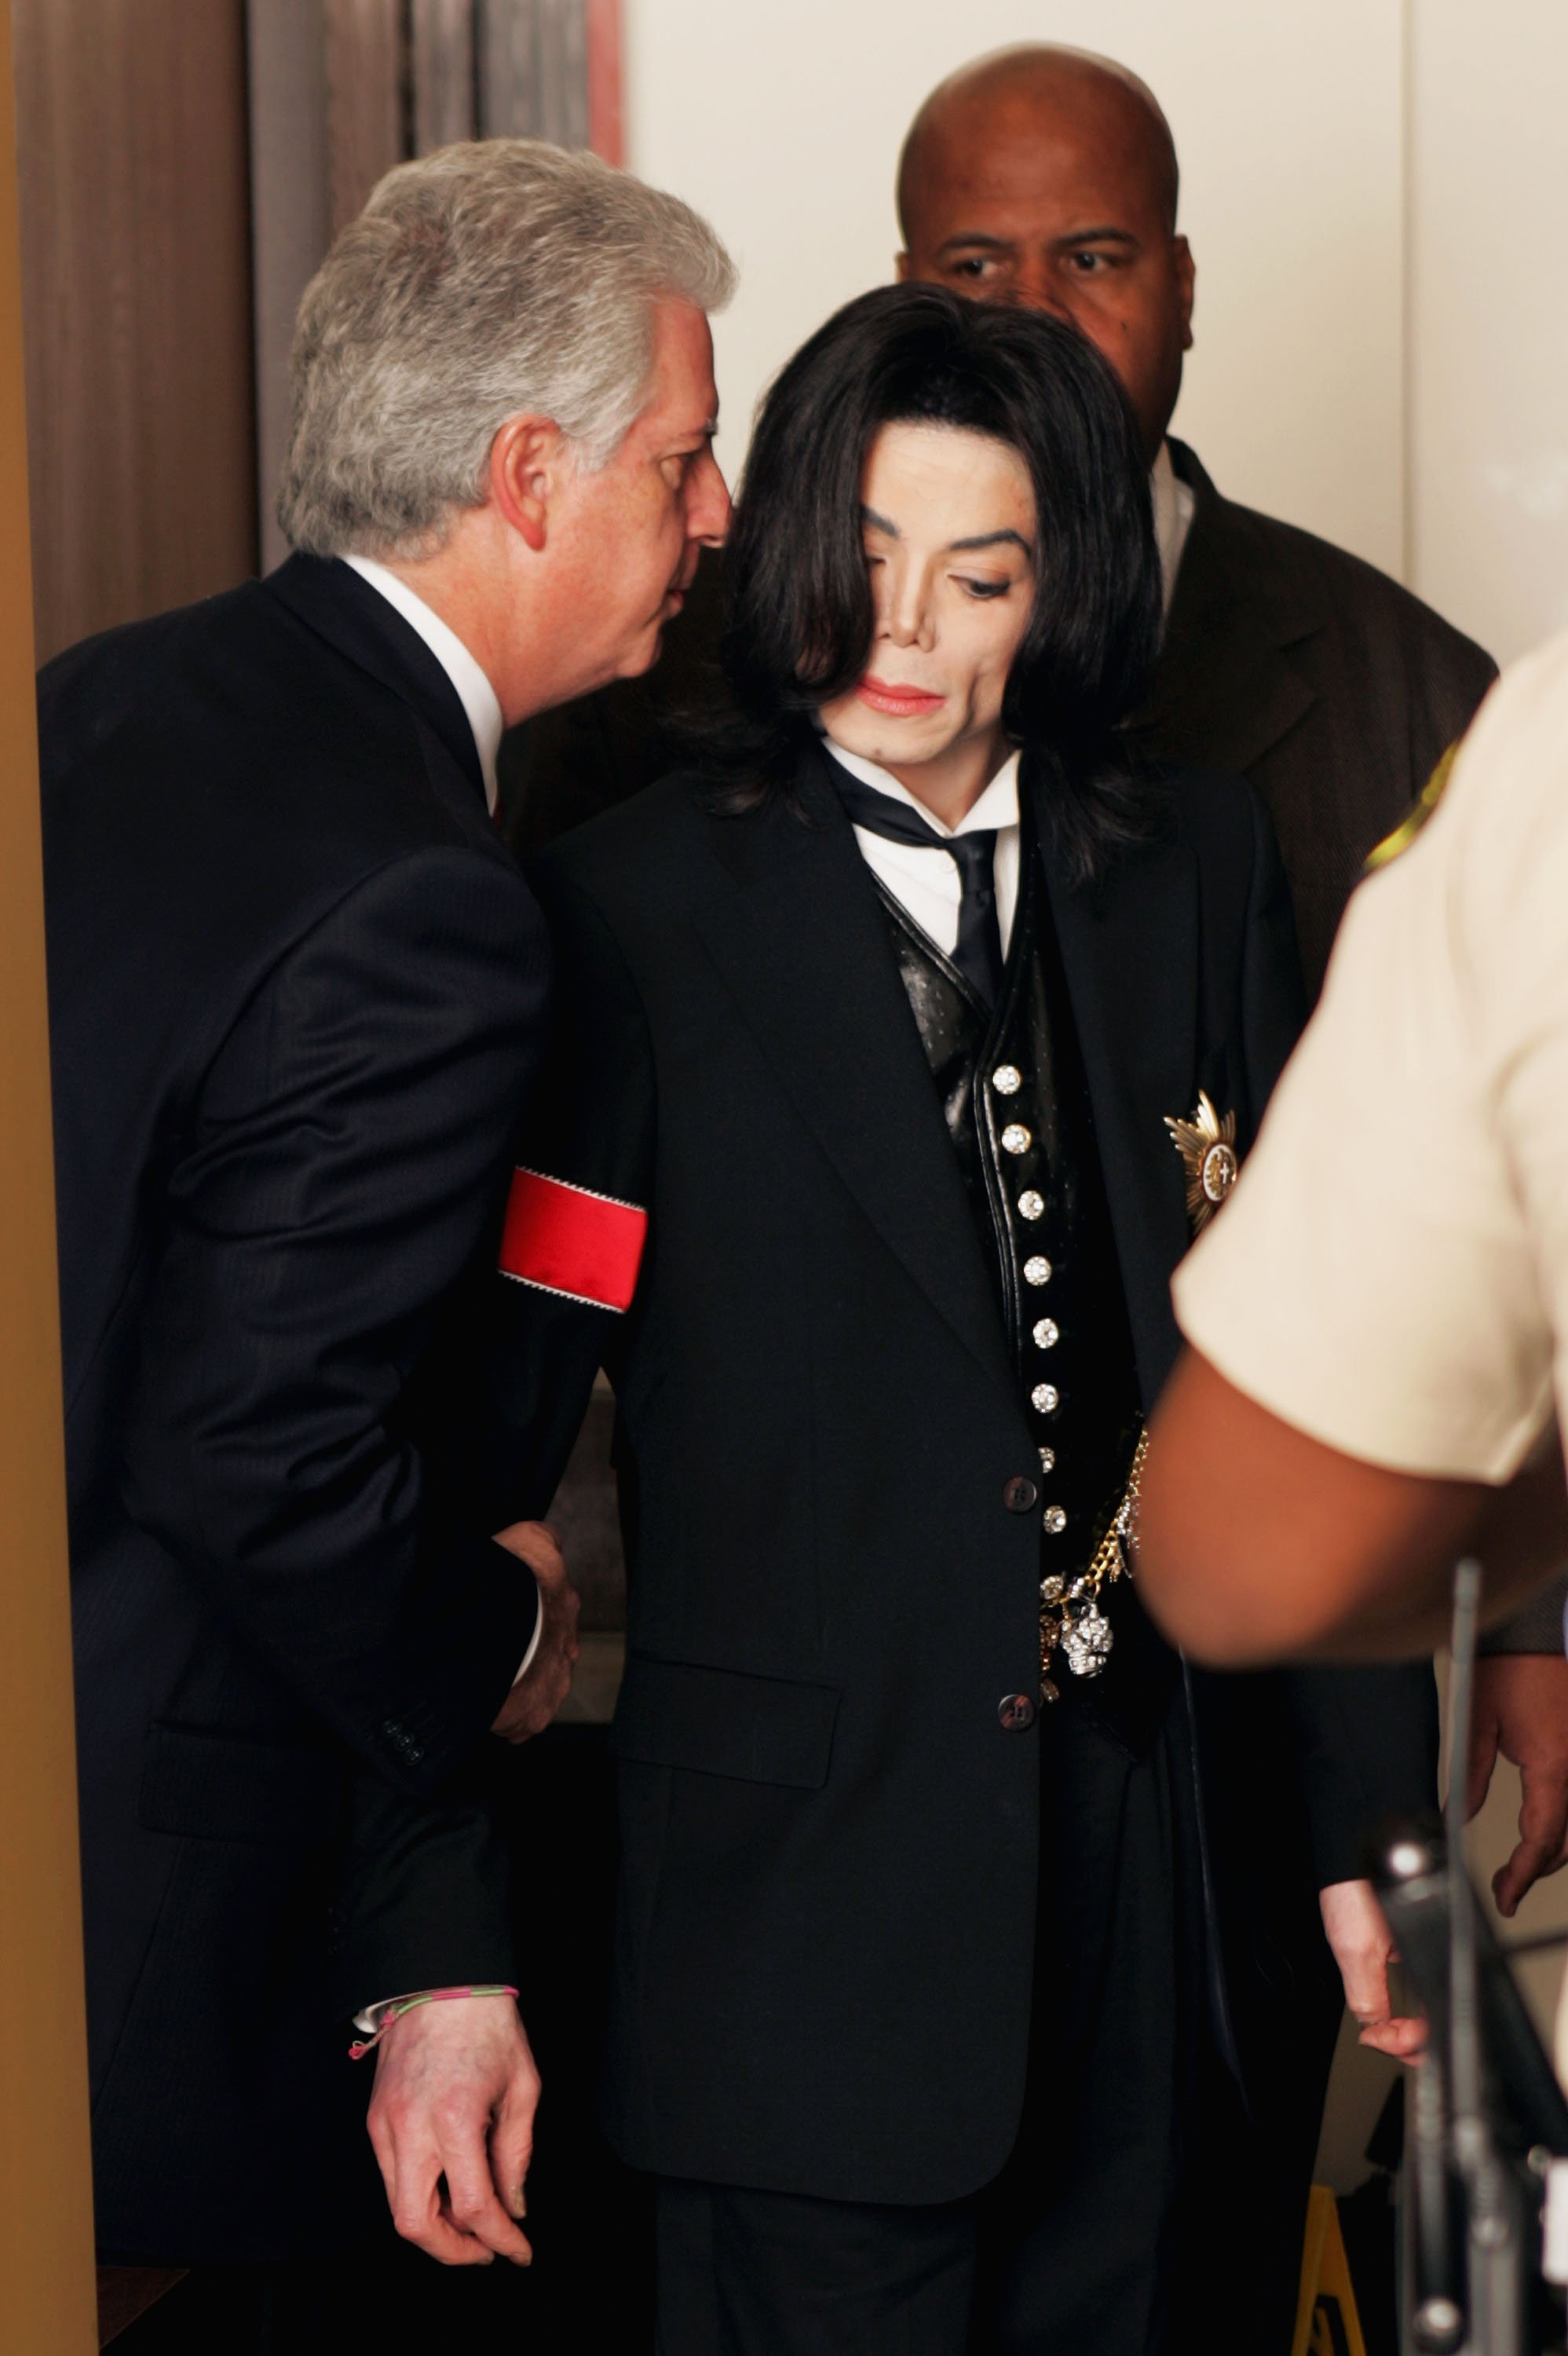 Michael Jackson at the Santa Barbara County Courthouse, in Santa Maria, California, for his child molestation's trial in 2005 | Photo: Getty Images